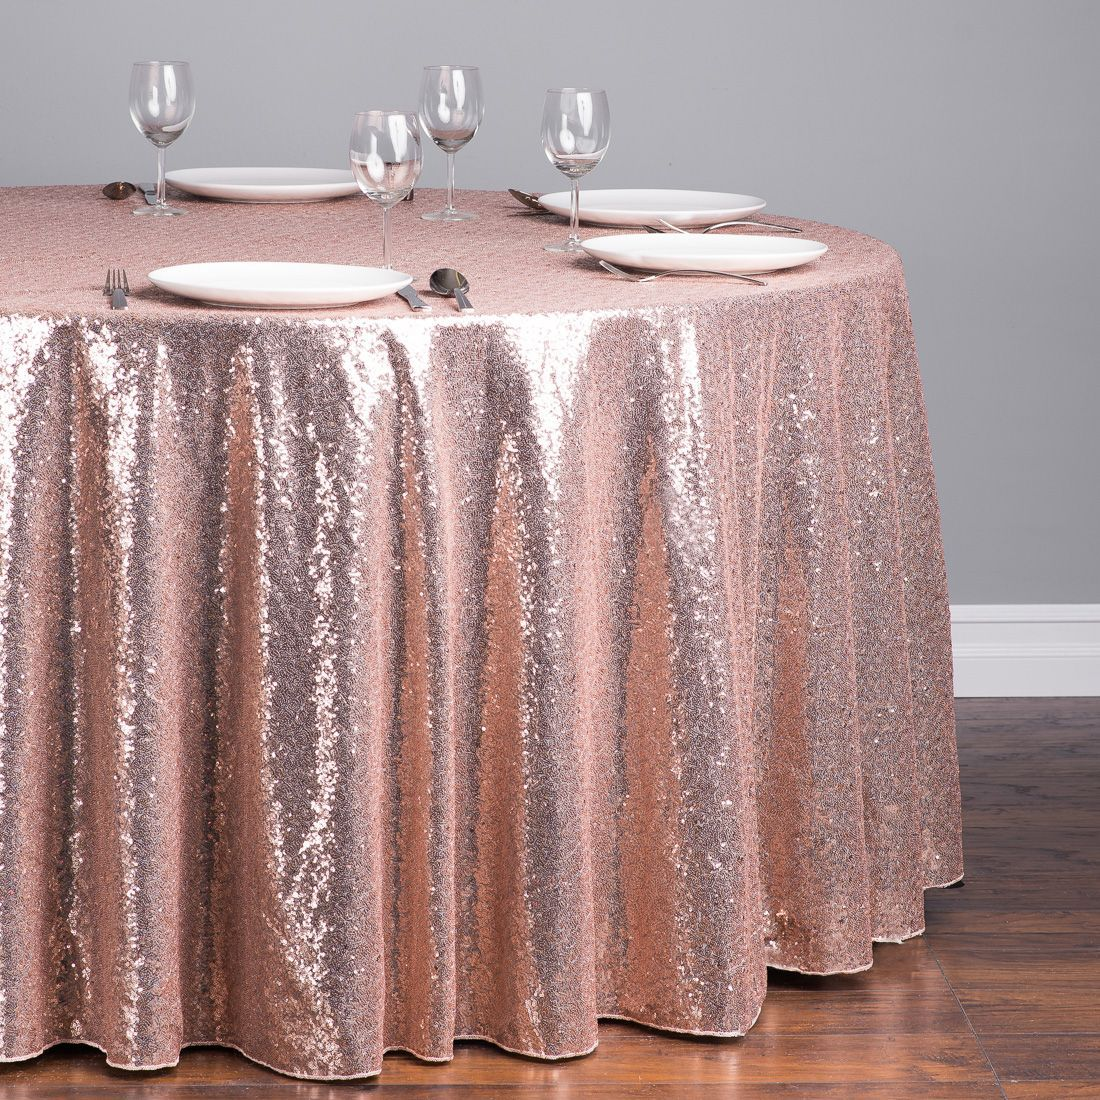 116 In Round Sequin Tablecloth Blush Pink Sequin Tablecloth